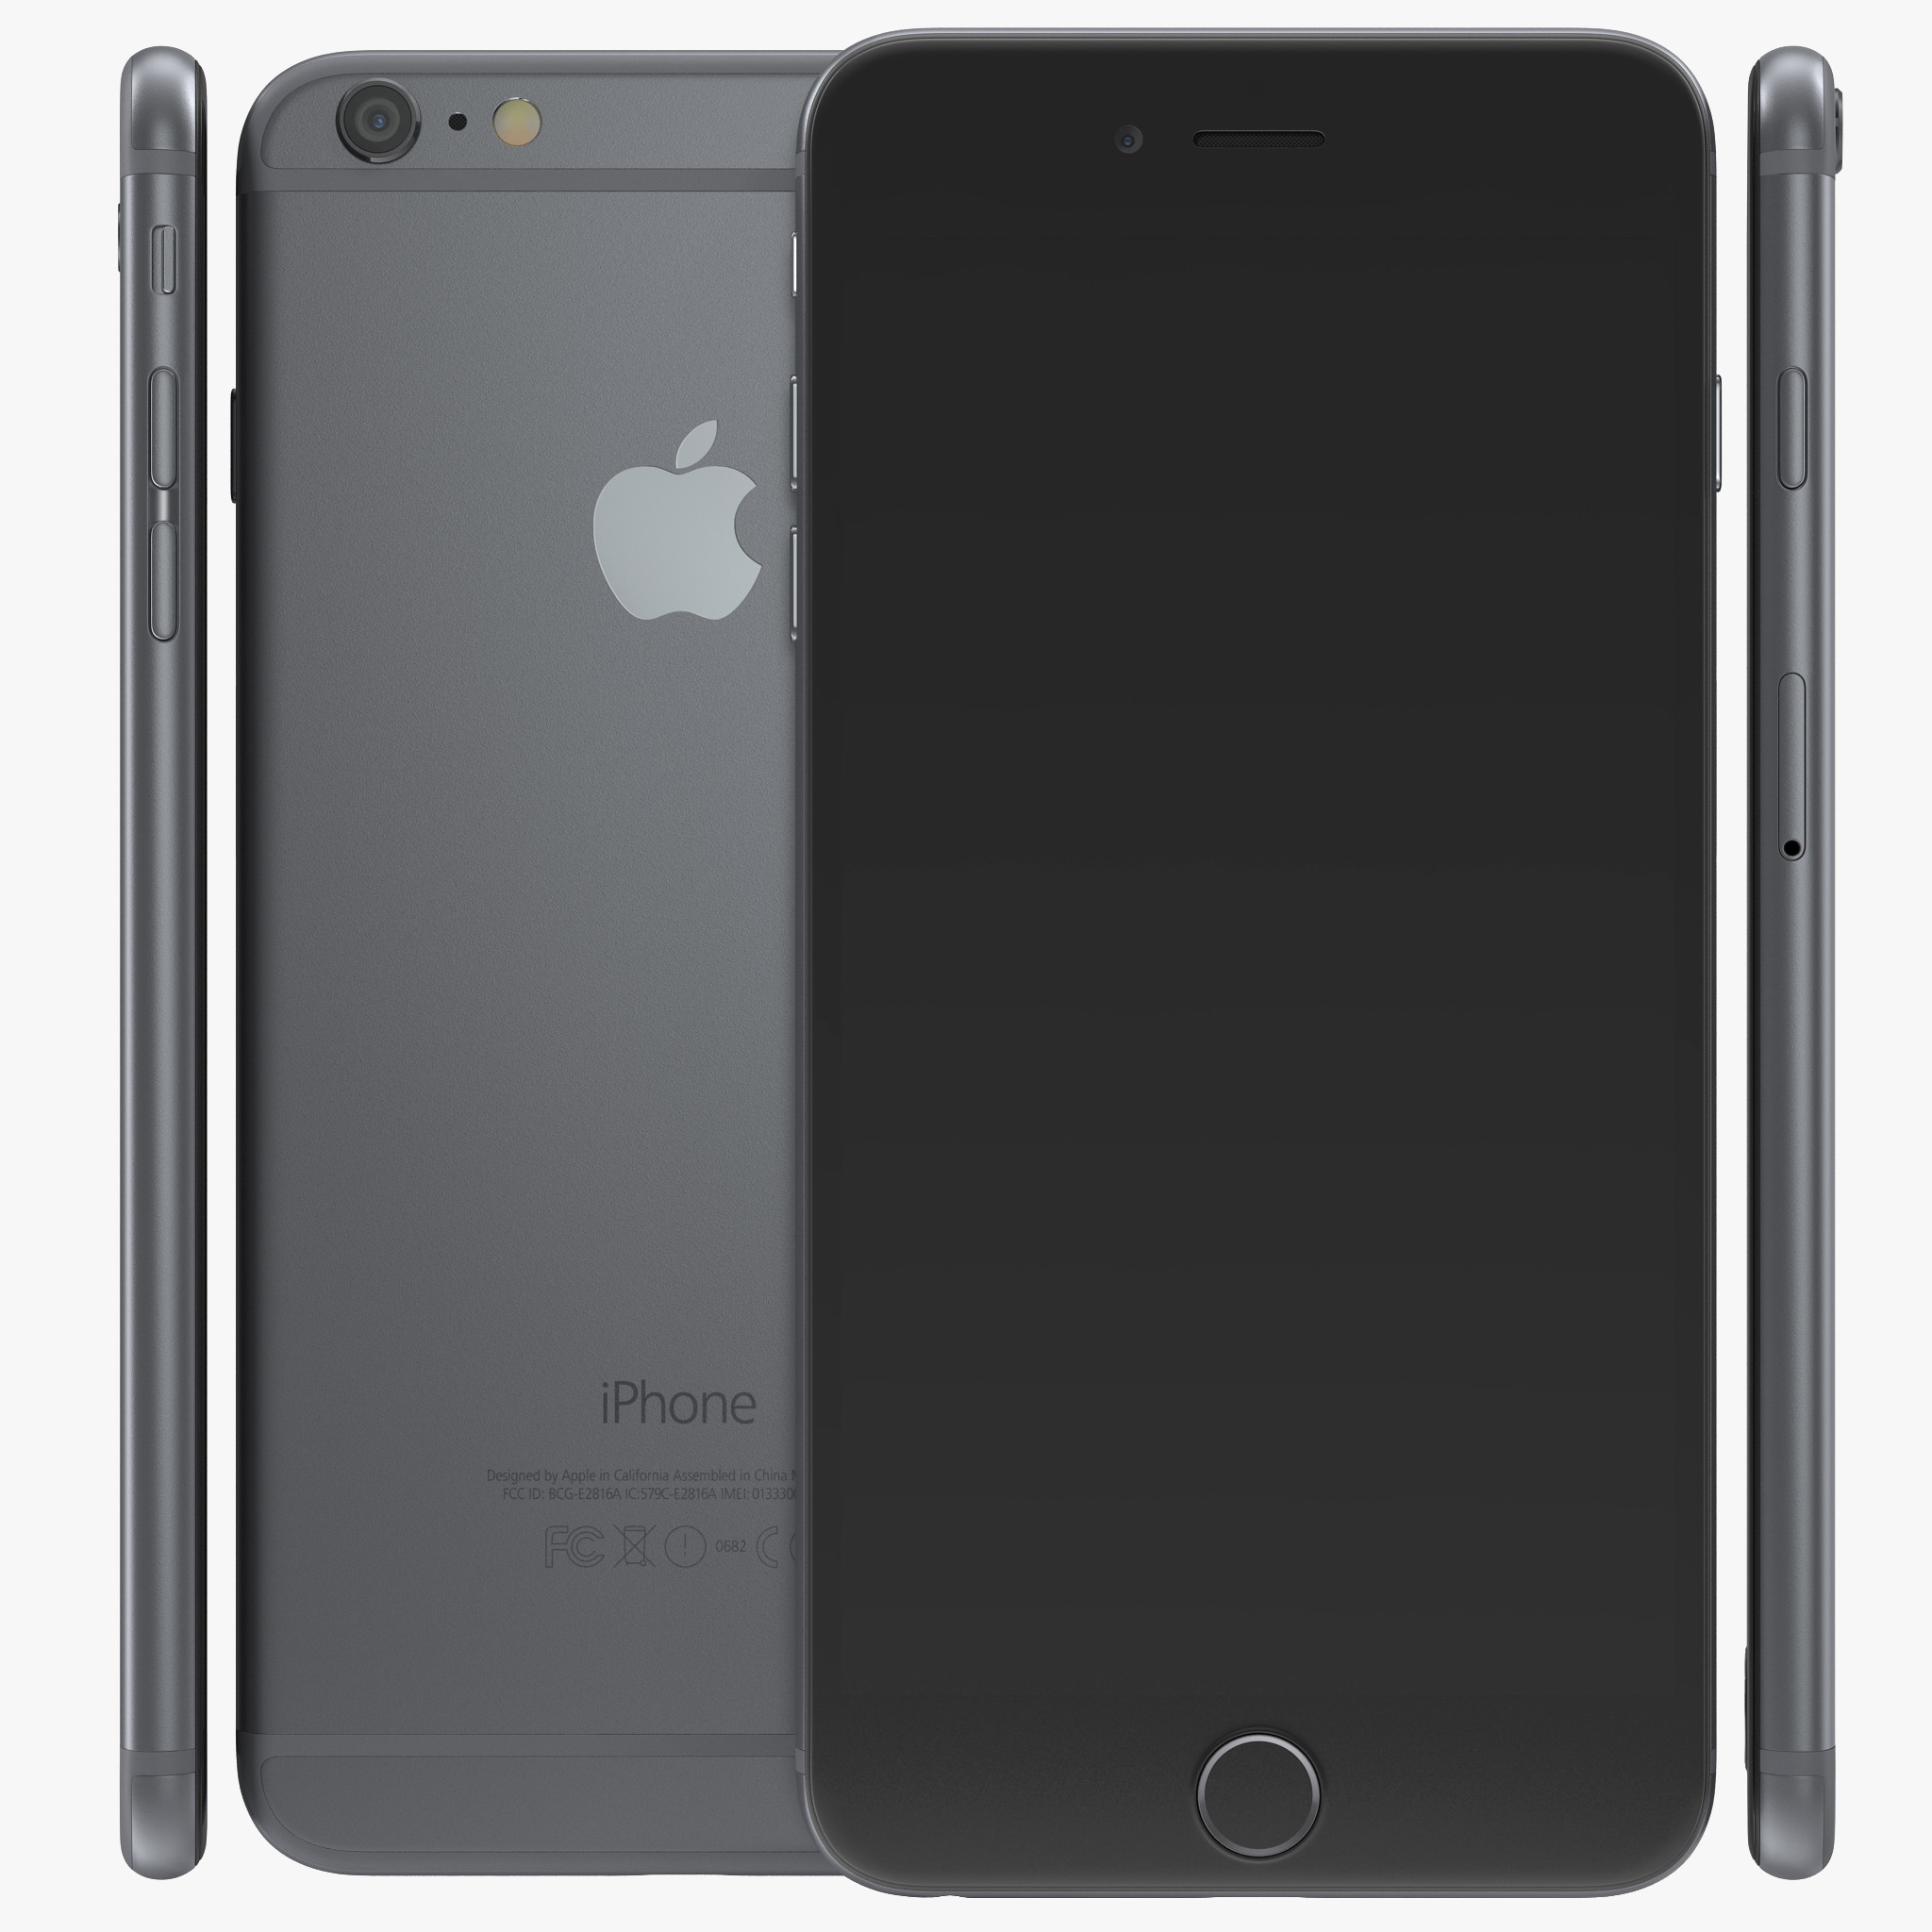 How to how to make 3d phone cases : 2048 x 2048 jpeg 361 KB, IPhone 6 Plus Space Gray 3d model 00.jpg